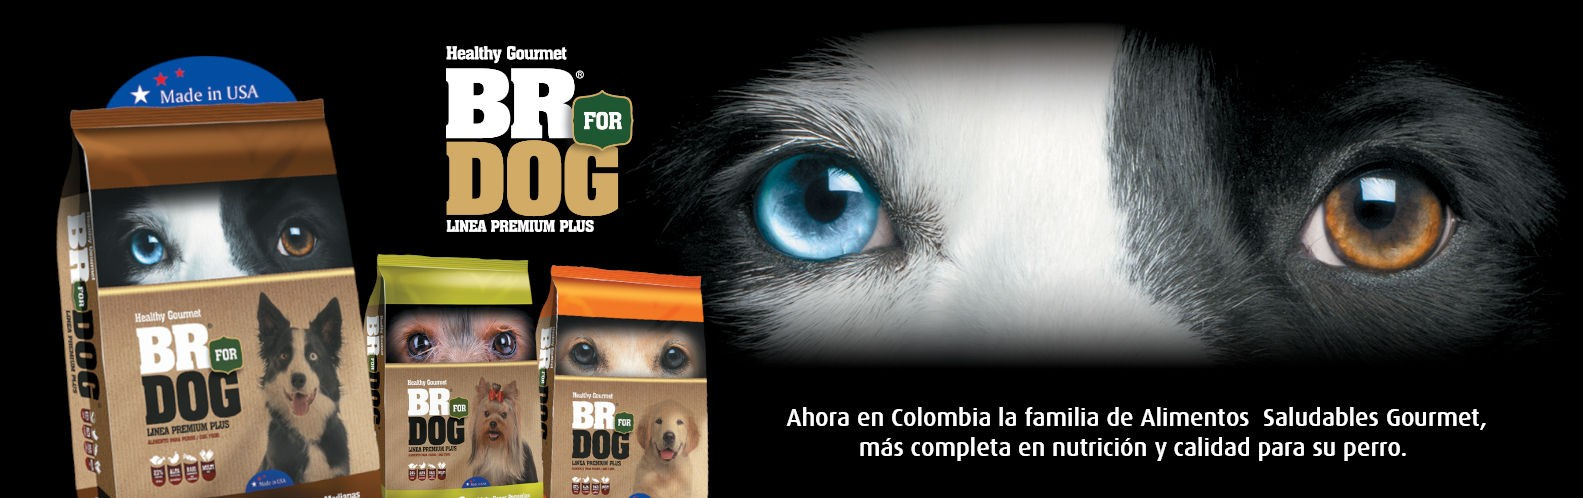 BR FOR DOG exiagricola